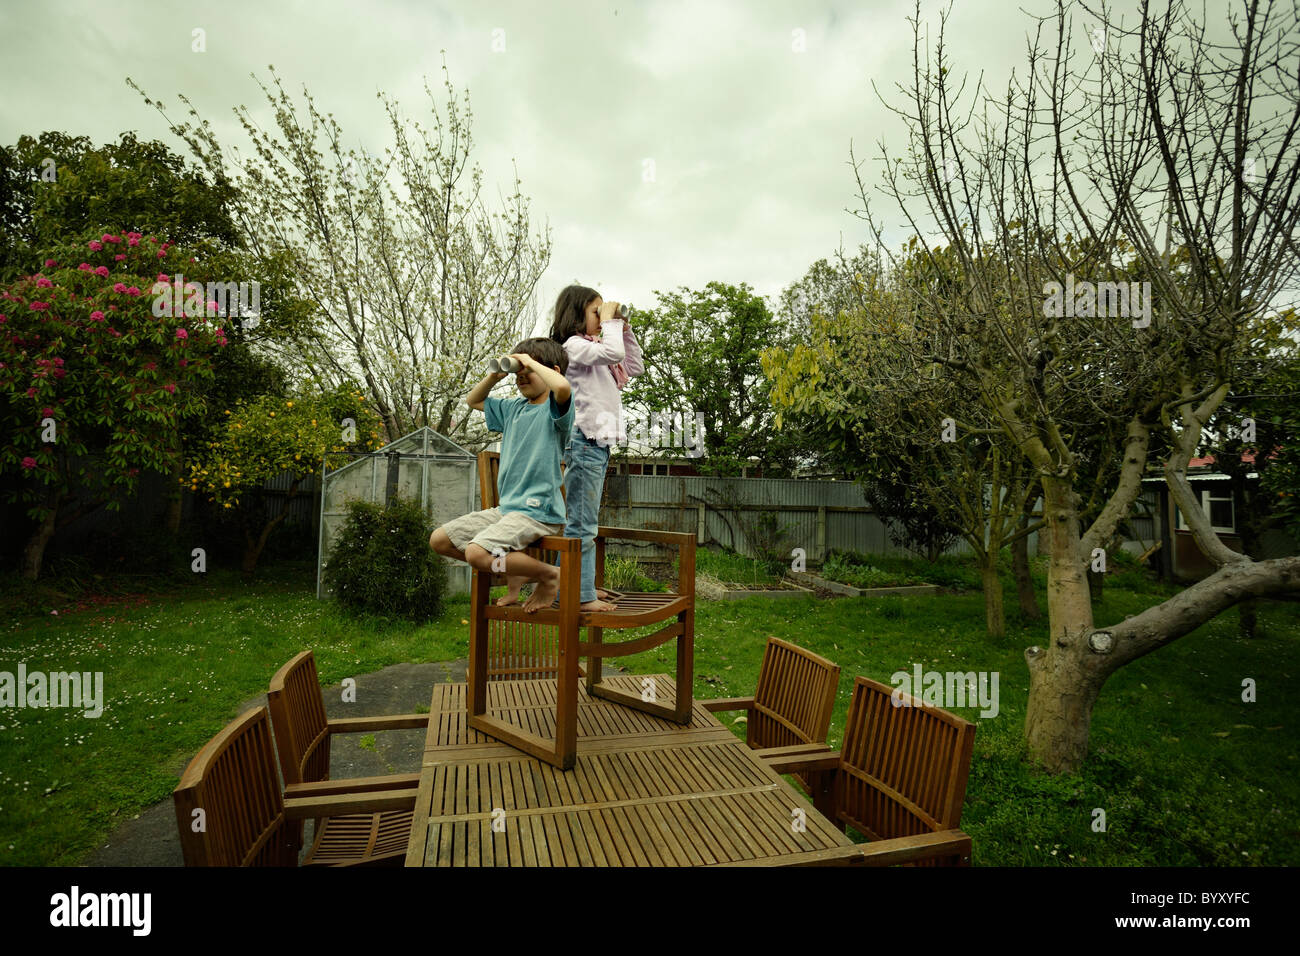 Boy and girl stand on chair on garden table, using cardboard tubes as pretend binoculars. Stock Photo